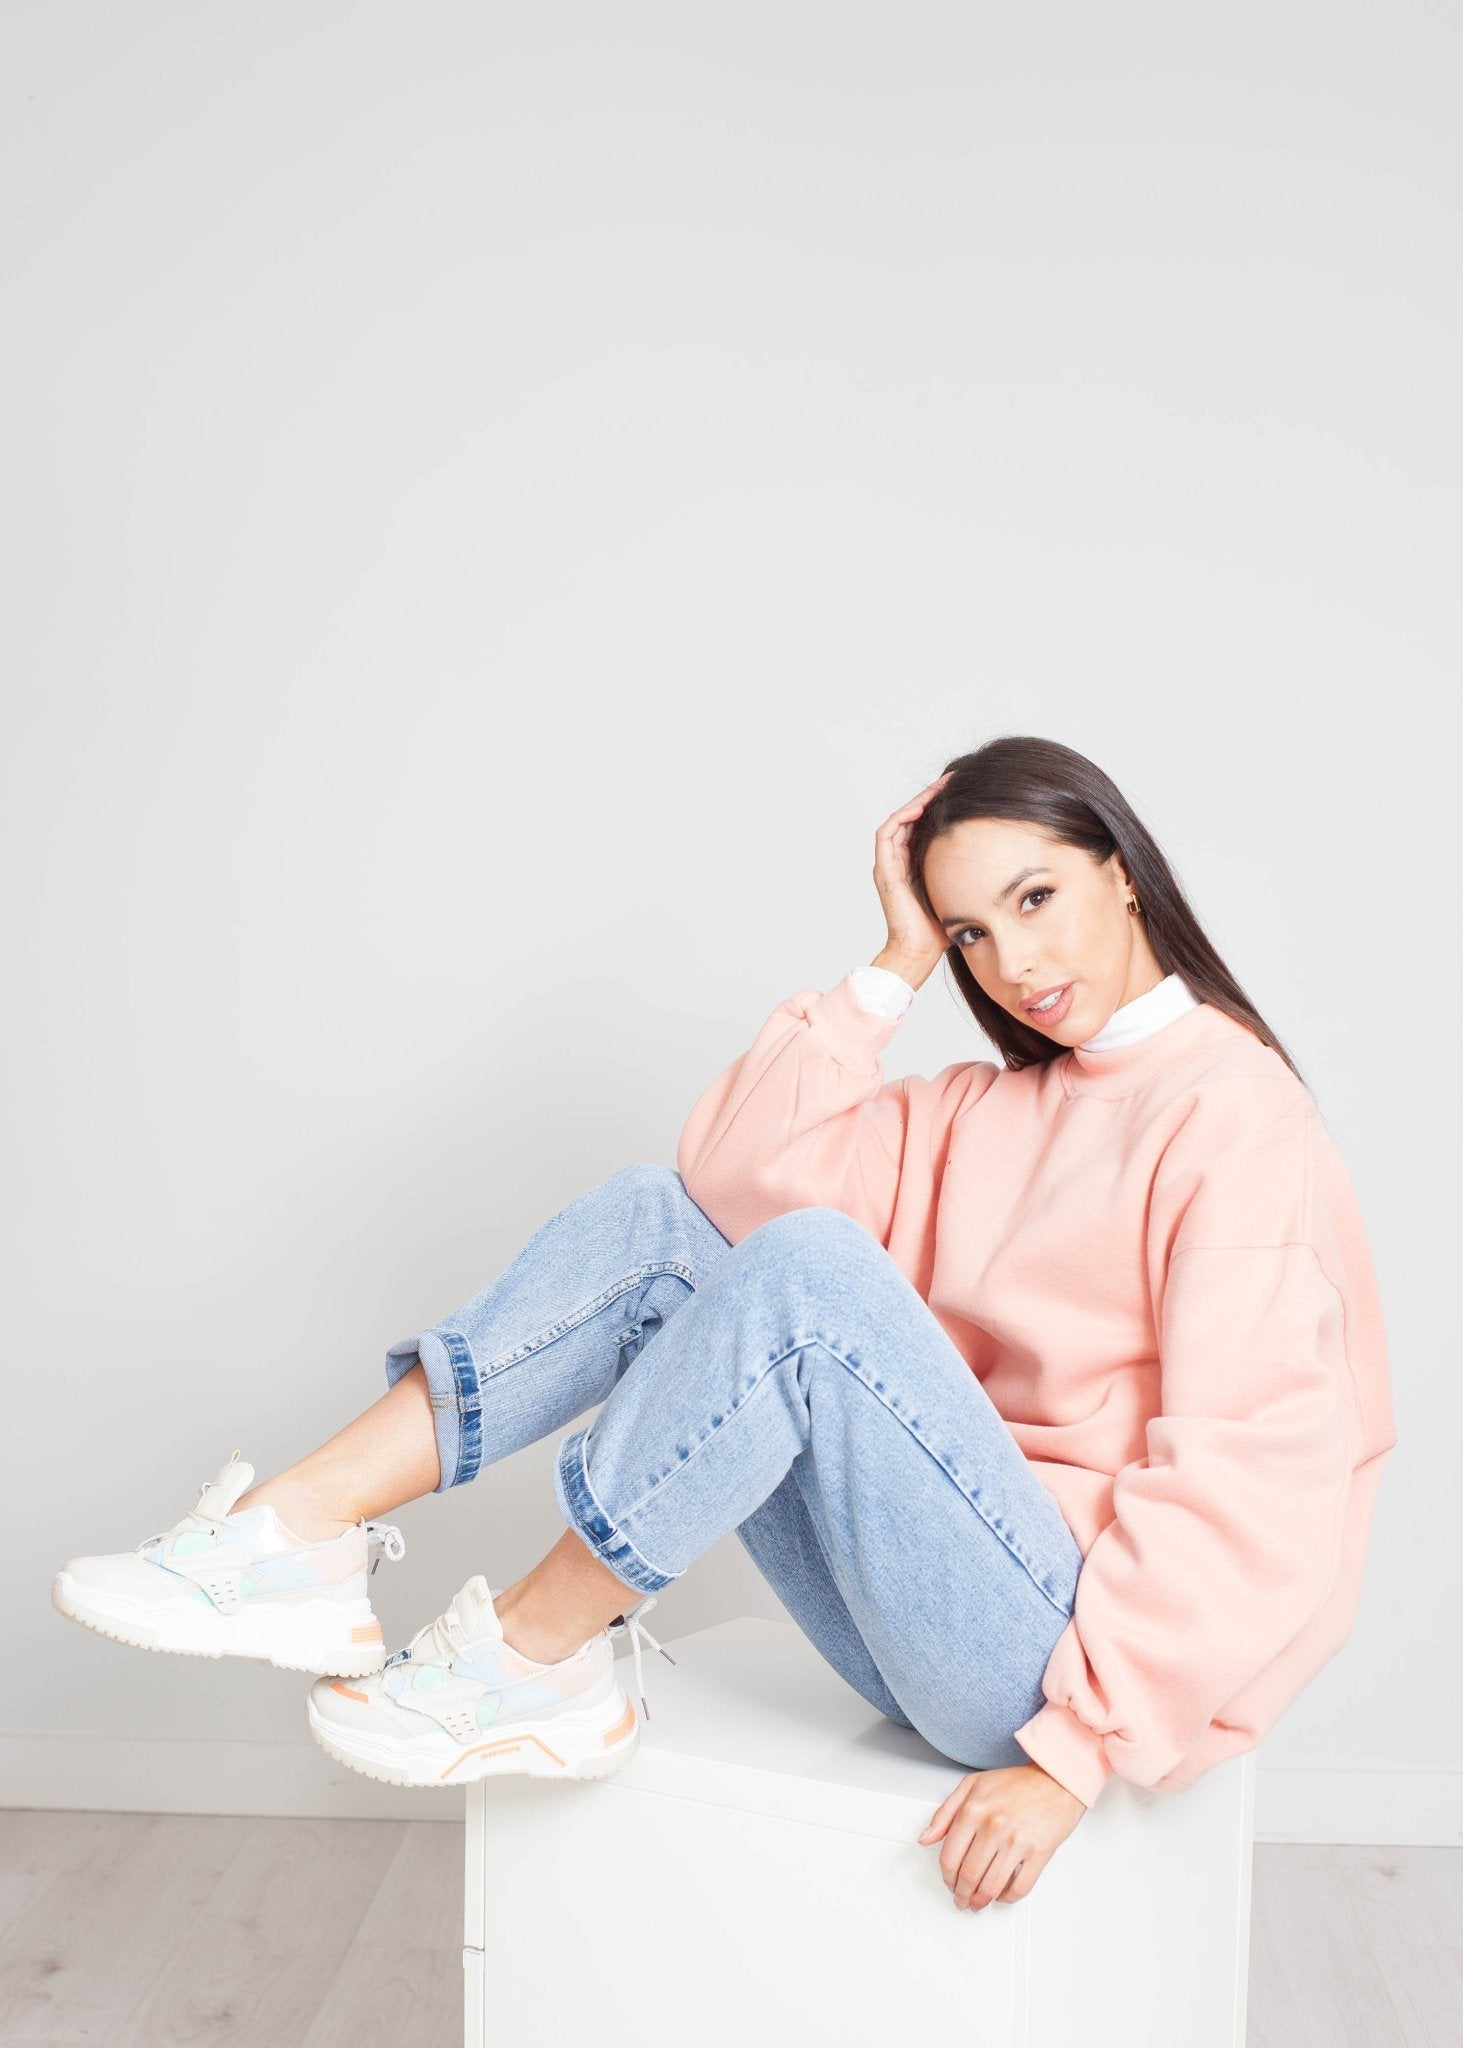 Priya Oversized Sweatshirt In Pink - The Walk in Wardrobe